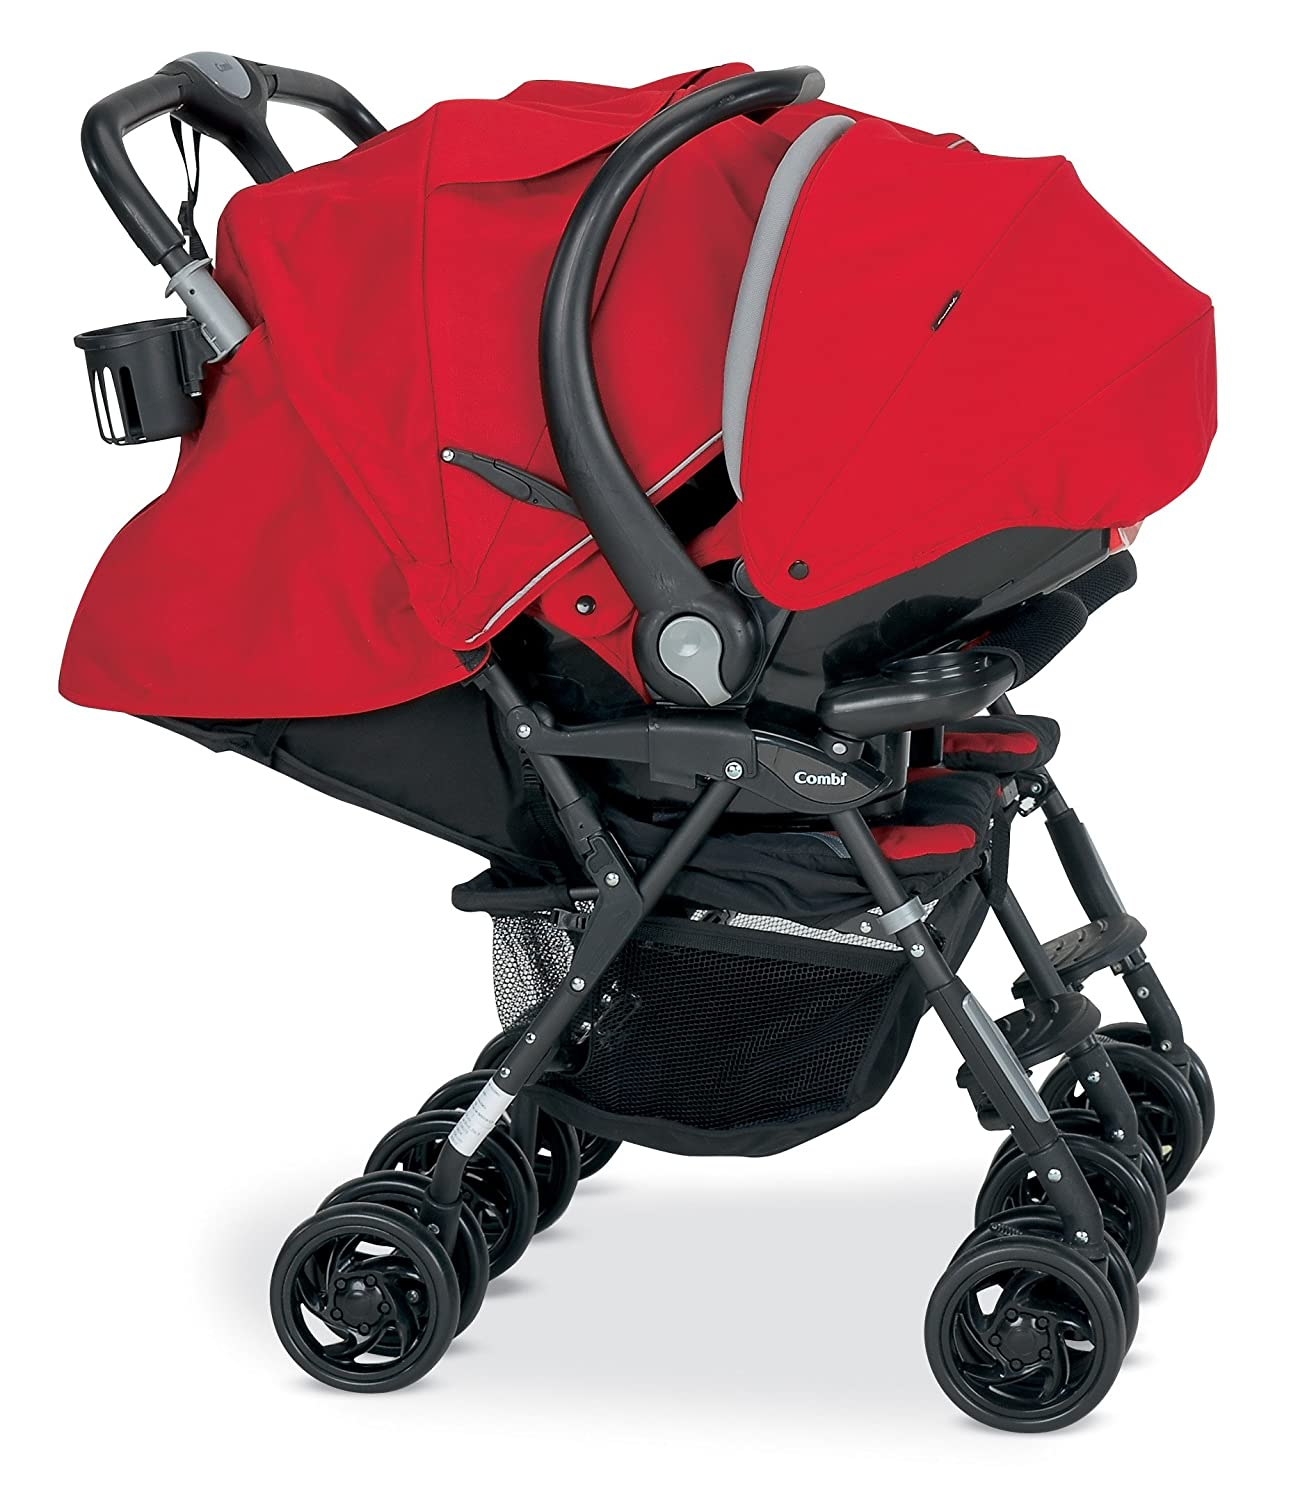 Combi Cosmo Twin Stroller - Red: Amazon.co.uk: Baby